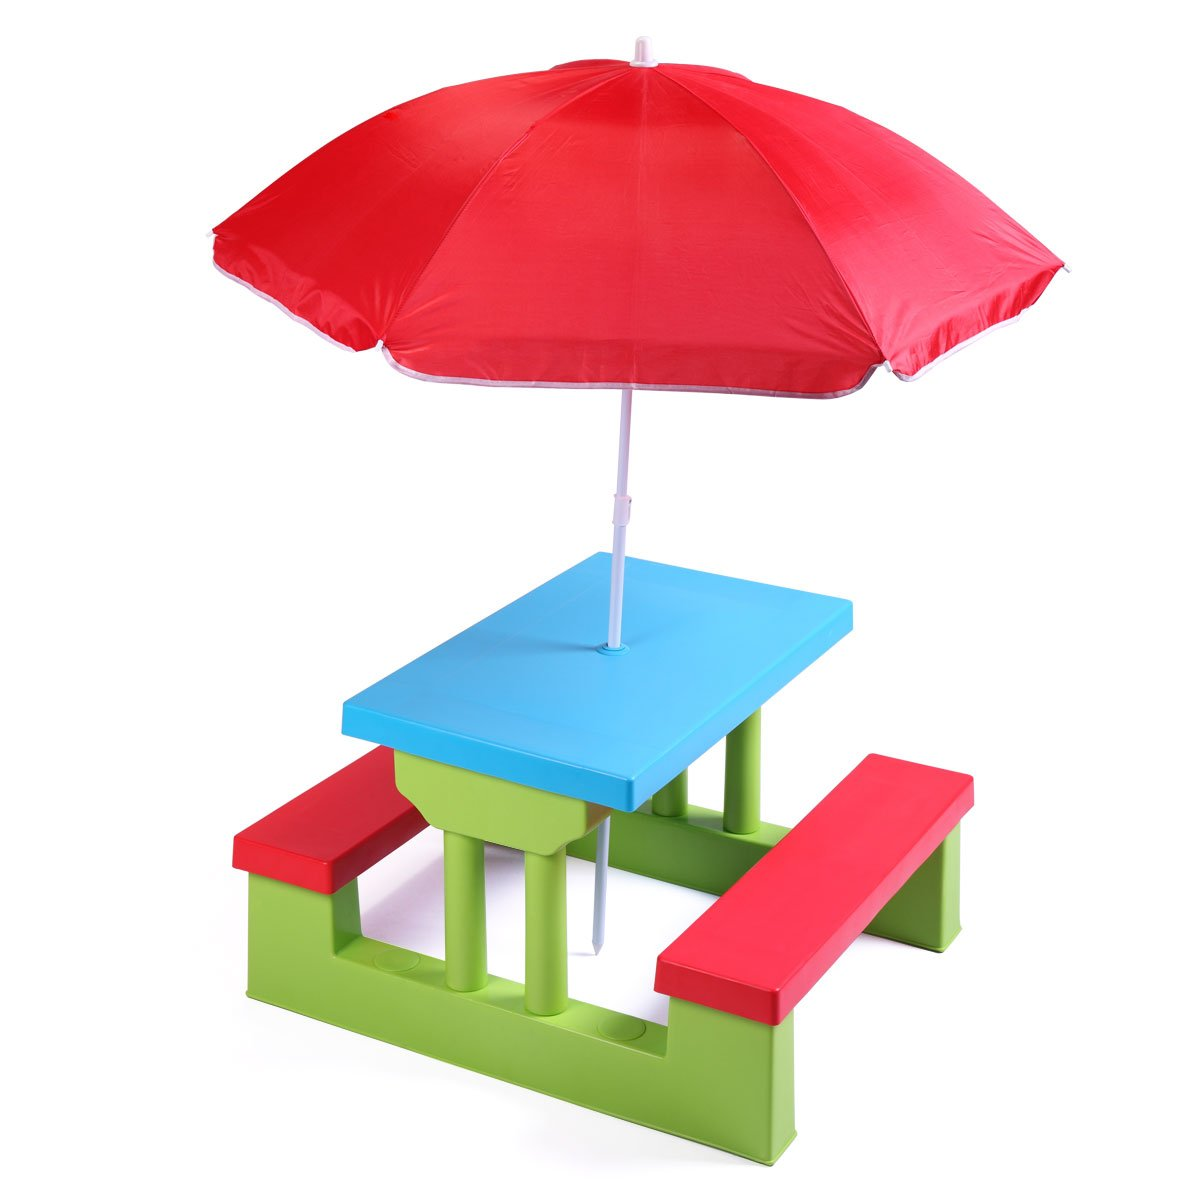 TOBBI Colorful Kids Picnic Table Bench Set Portable Garden Yard Bench w/ Removable Umbrella by TOBBI